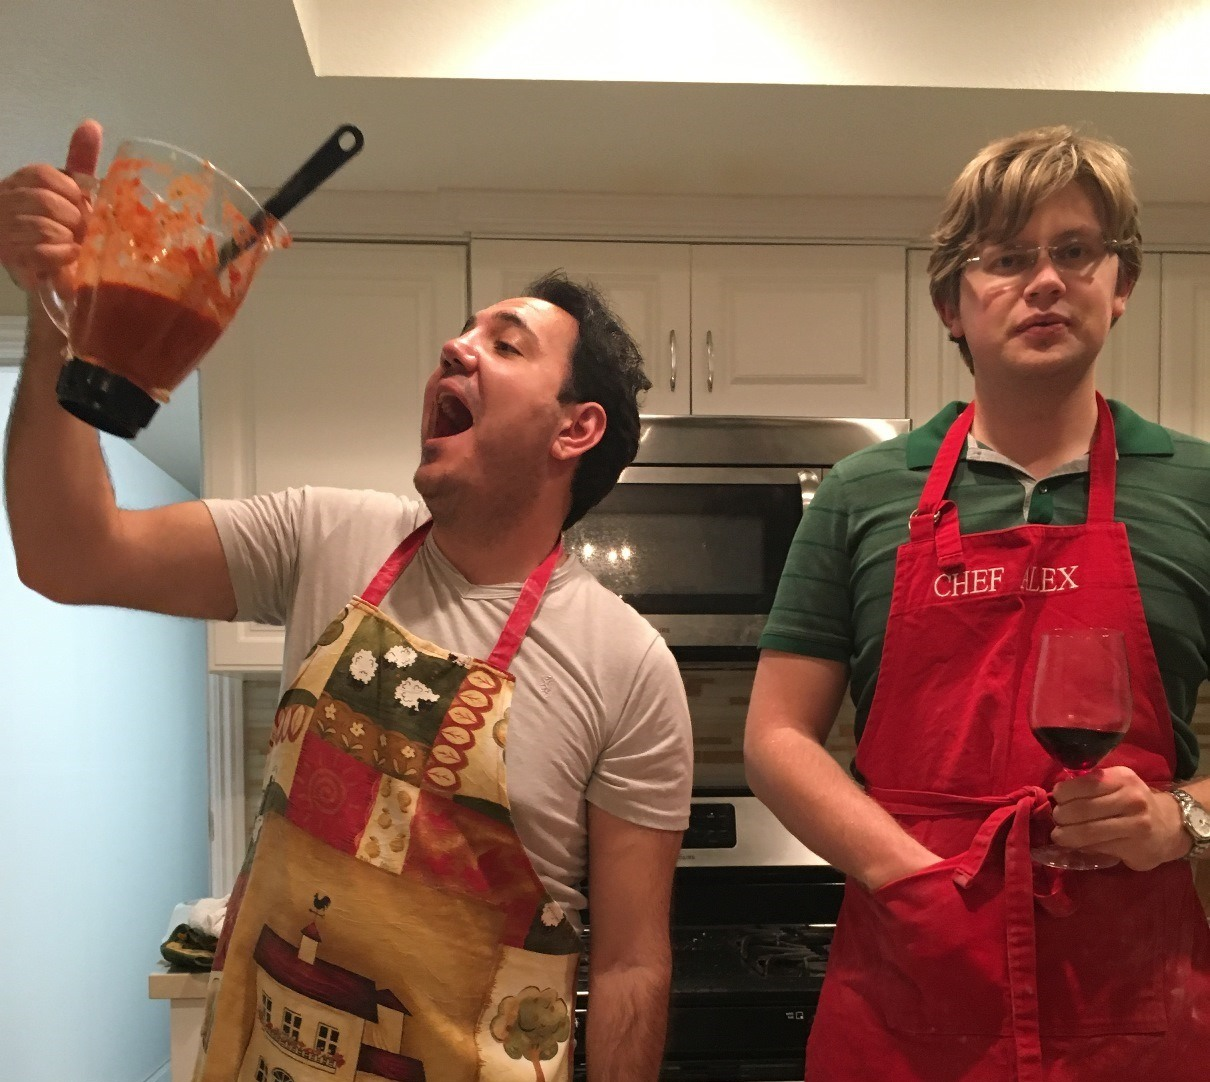 Vardan and Alexander are cooking